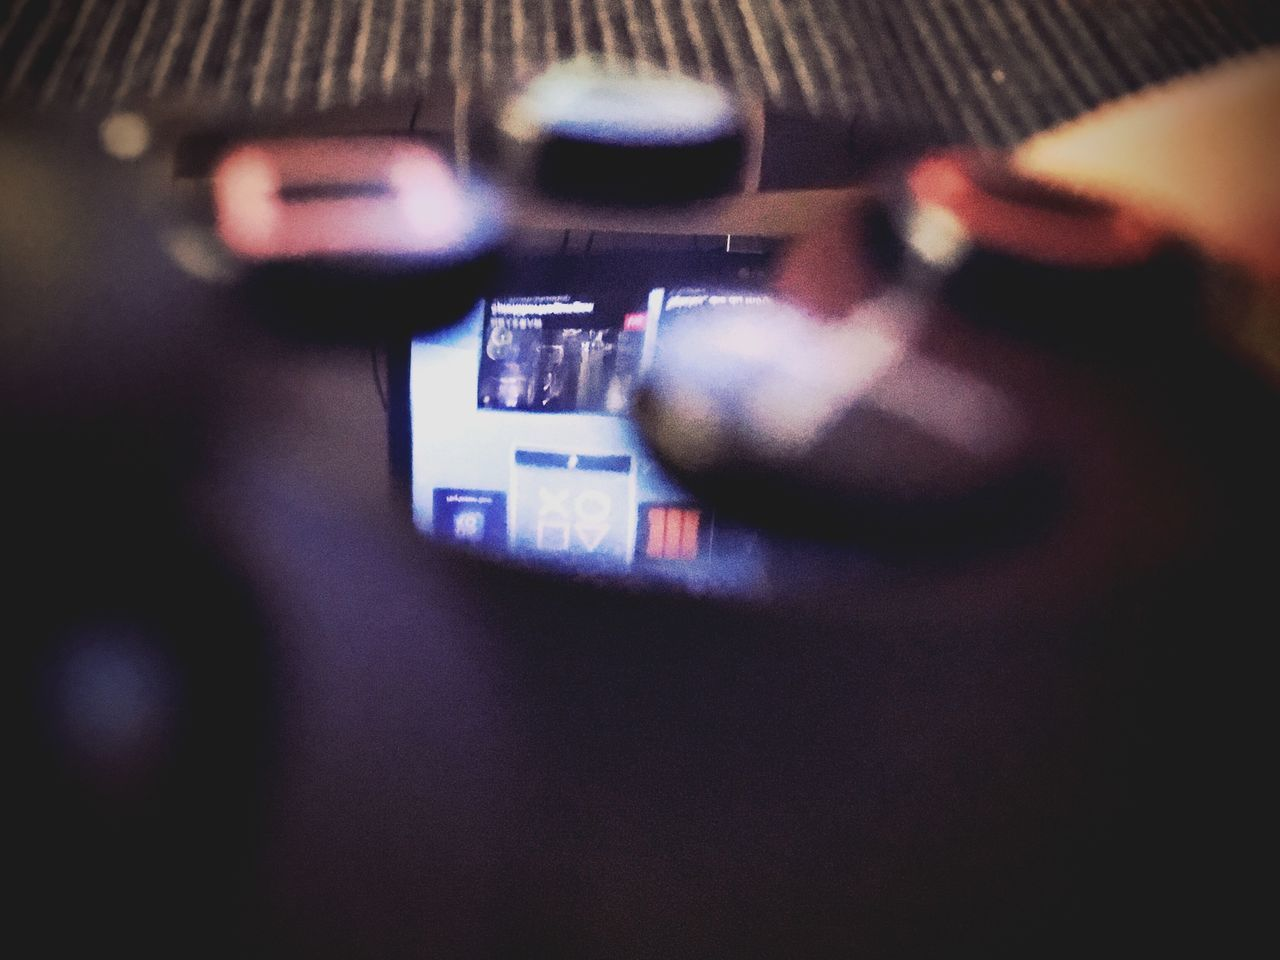 technology, indoors, selective focus, close-up, control panel, human hand, day, people